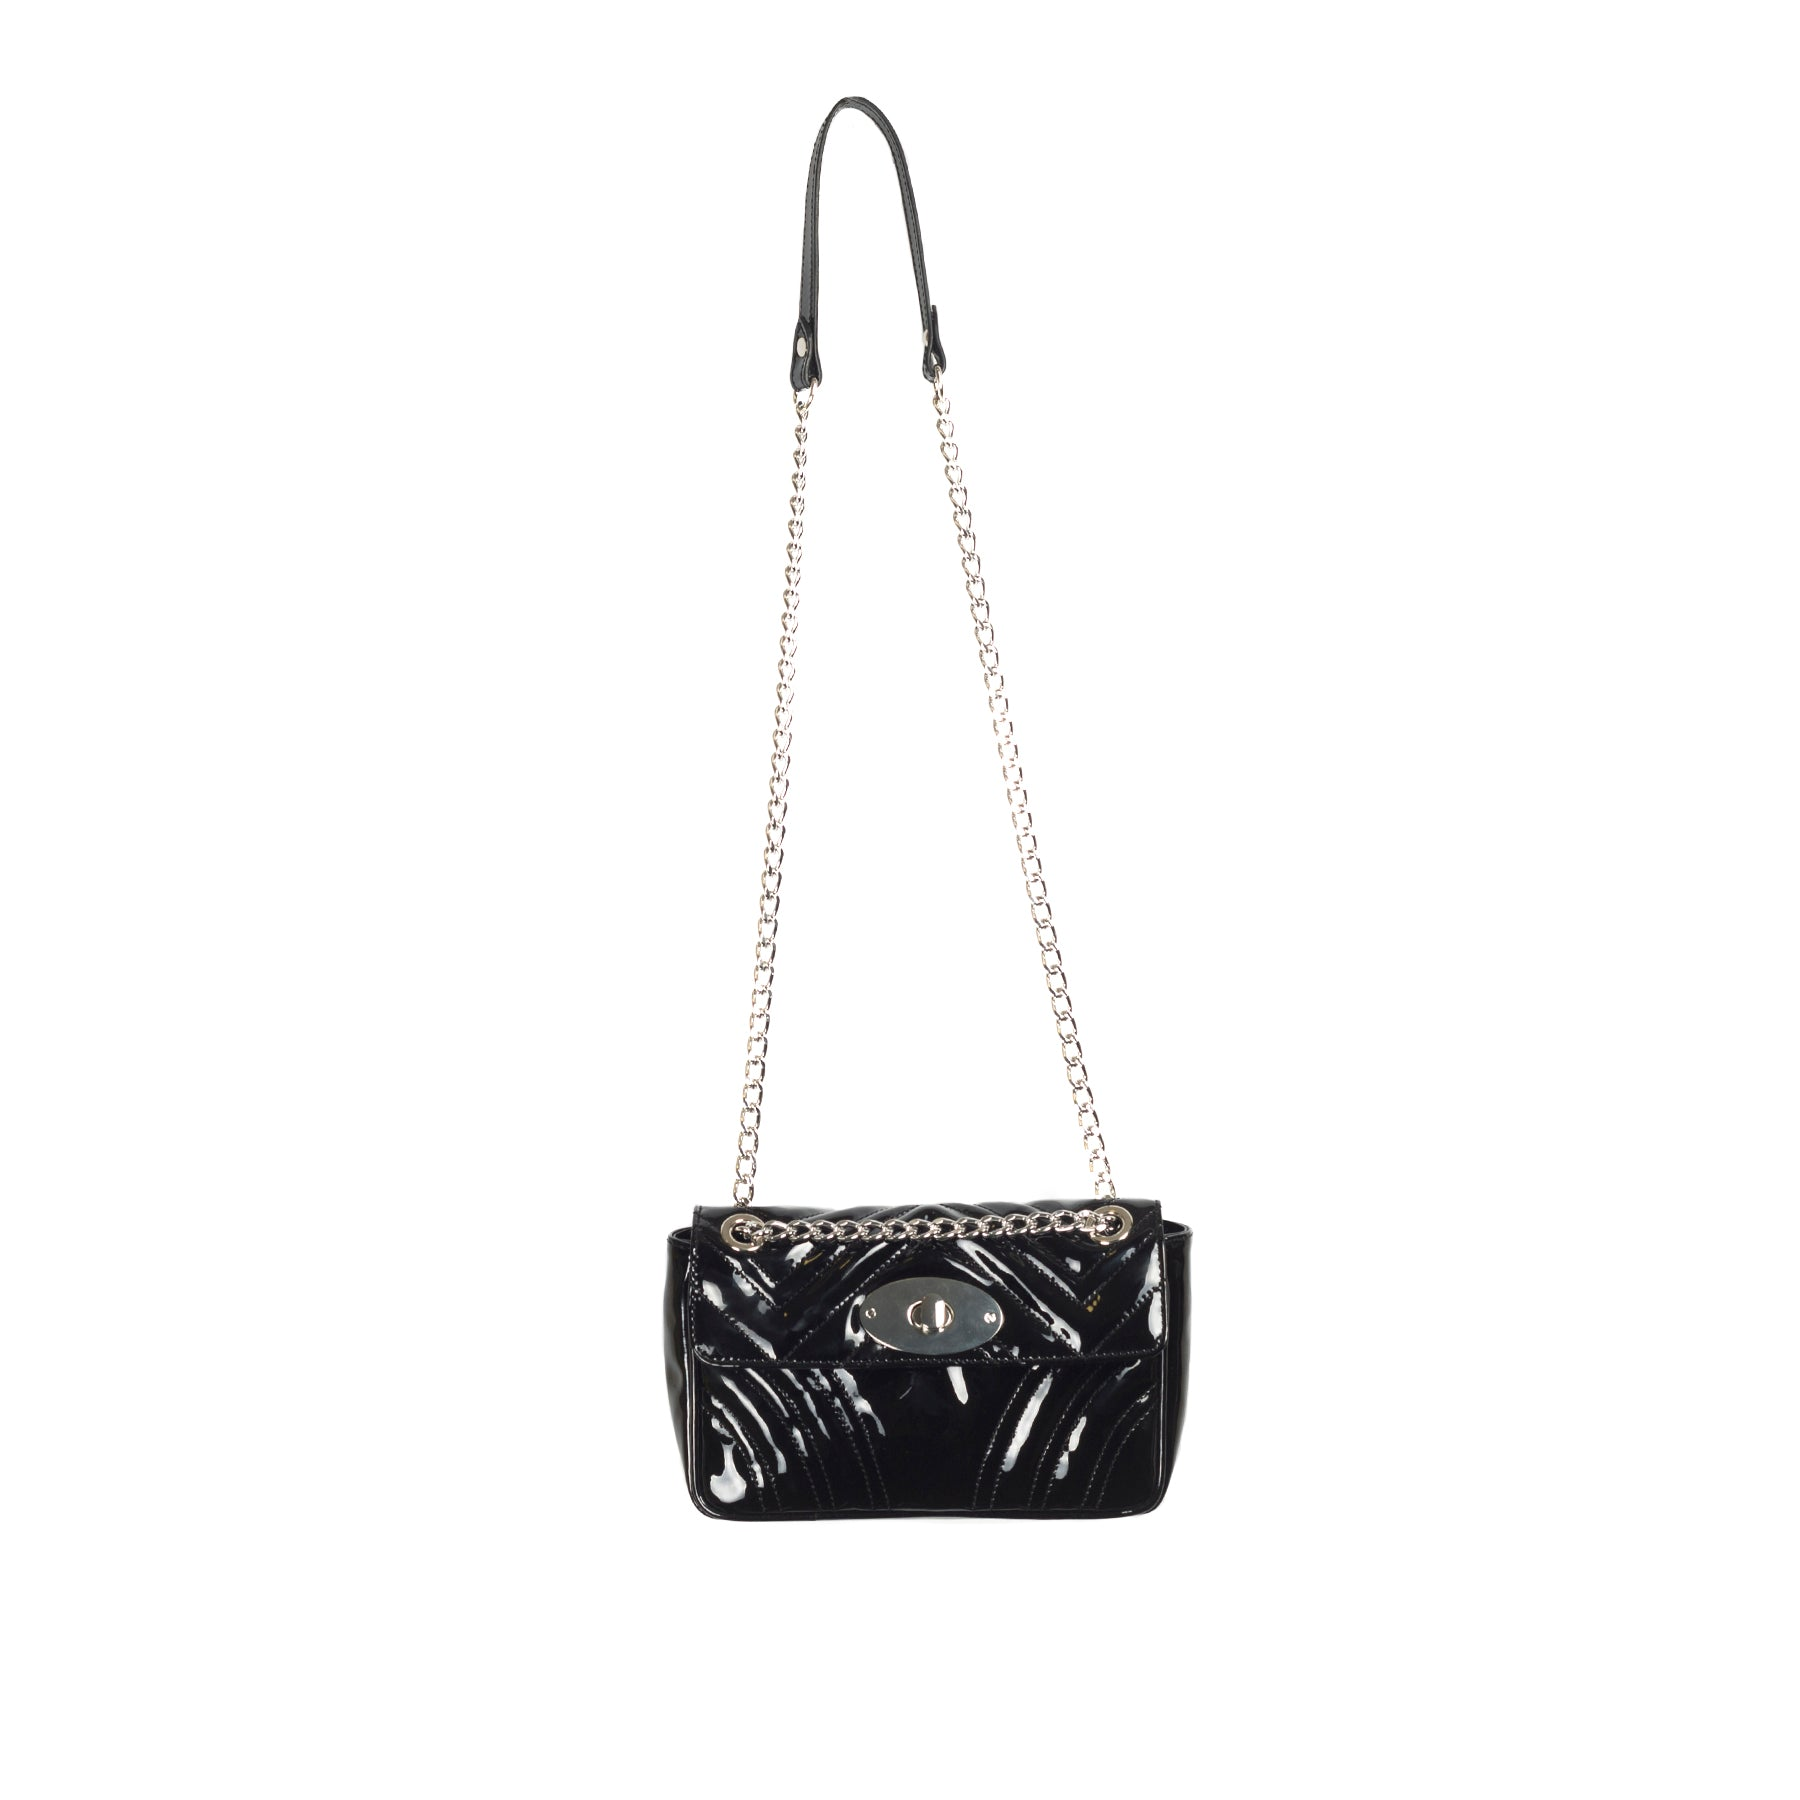 Juliet Black Patent Shoulder Bags